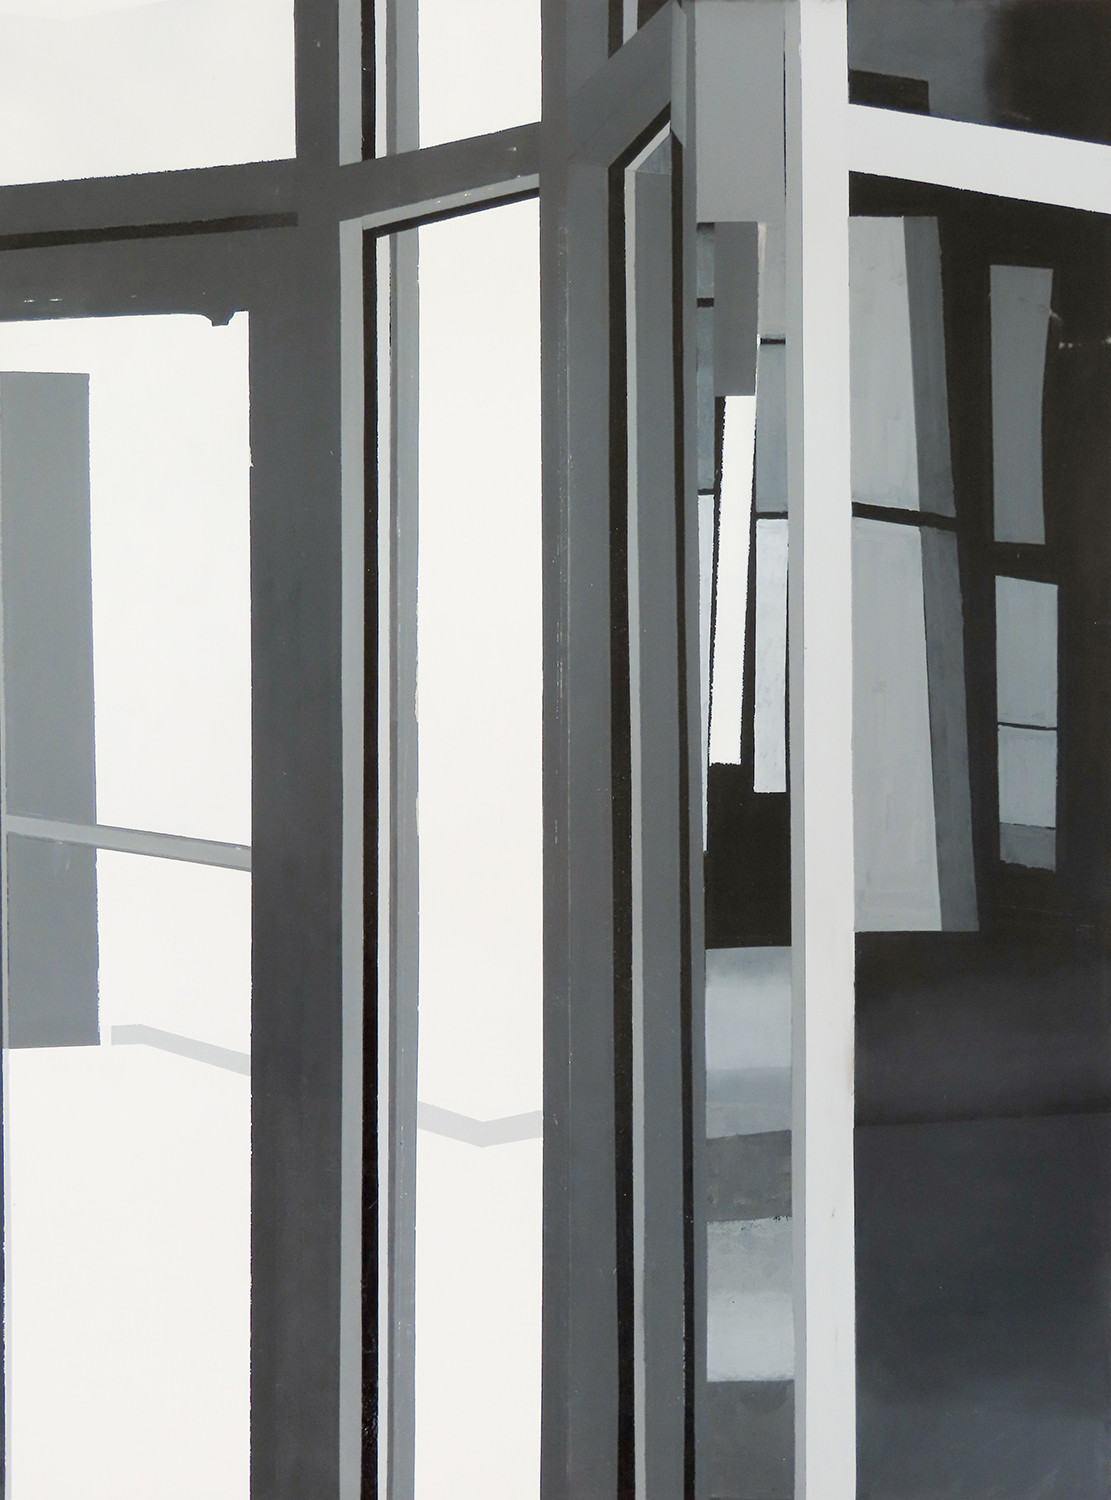 "Simulation, Acrylic on Wood Panel, 20""x40"", 2020"